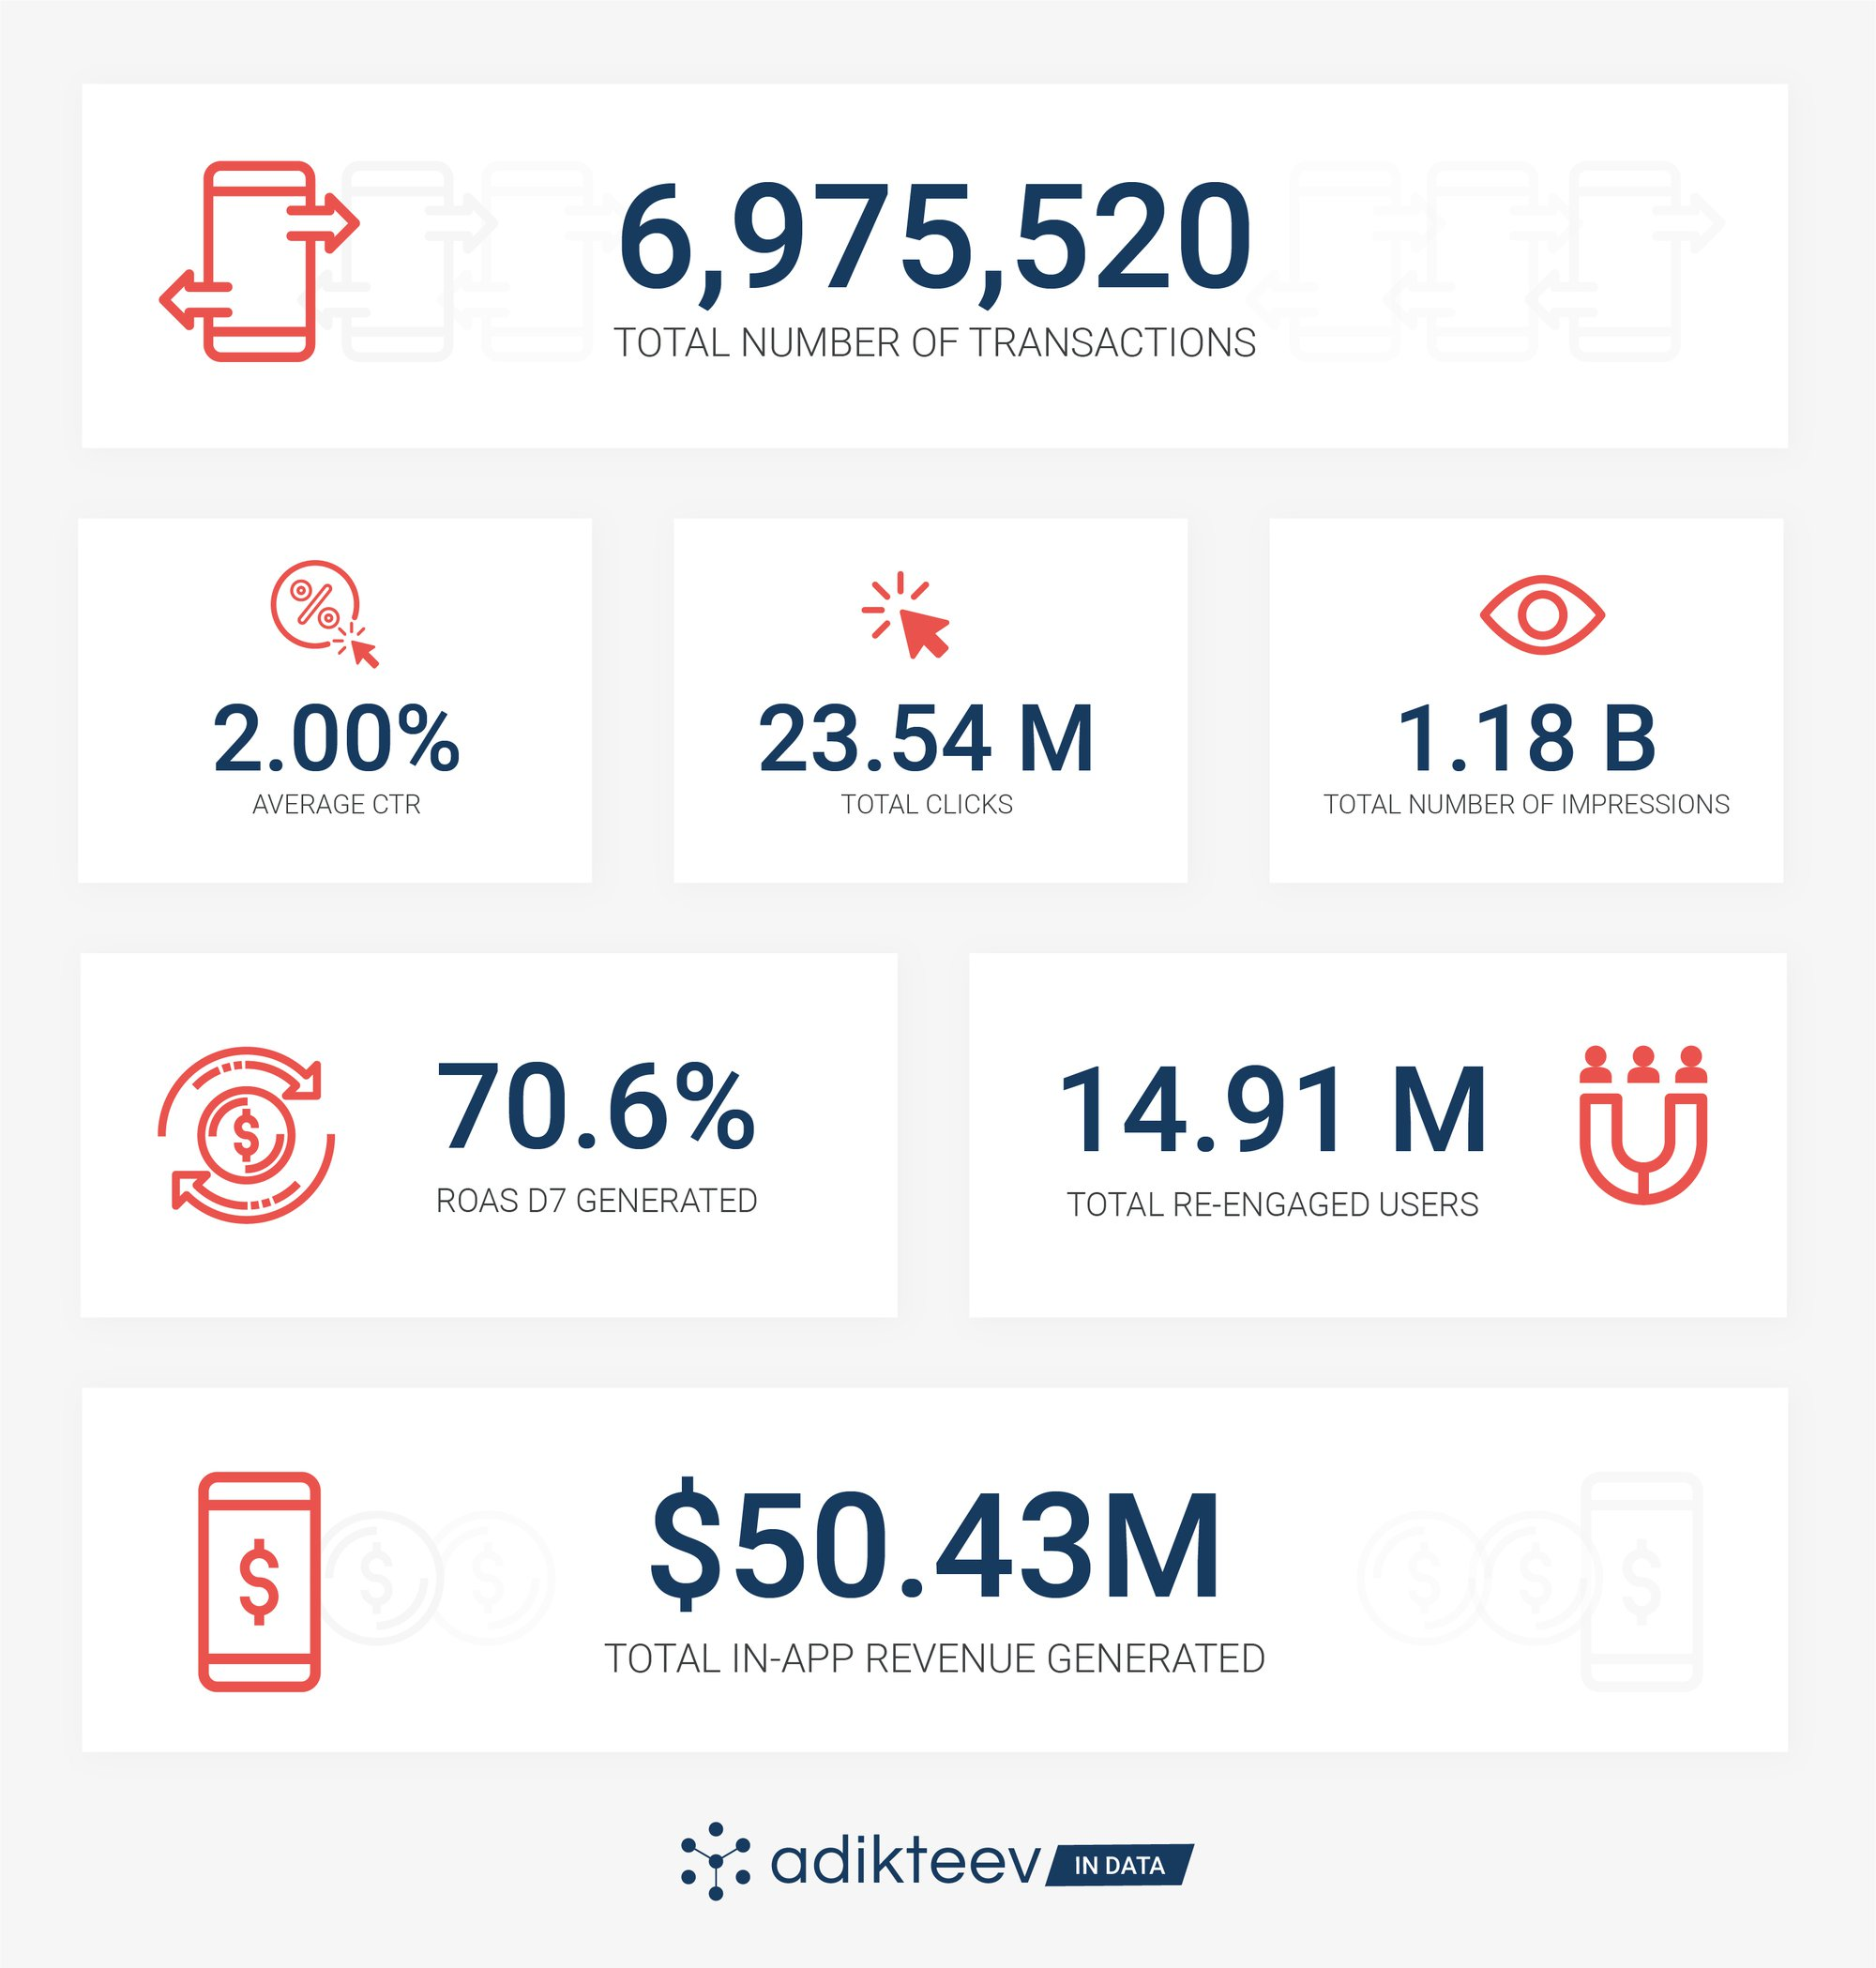 Total number of transactions: 6,975,520; Average CTR: 2%; Total Clicks: 23.54 M; Total number of impressions: 1.18 B; ROAS D7 Generated: 70.6%; Total re-engaged users: 14.91M; Total in-app revenue generated: $50.43M